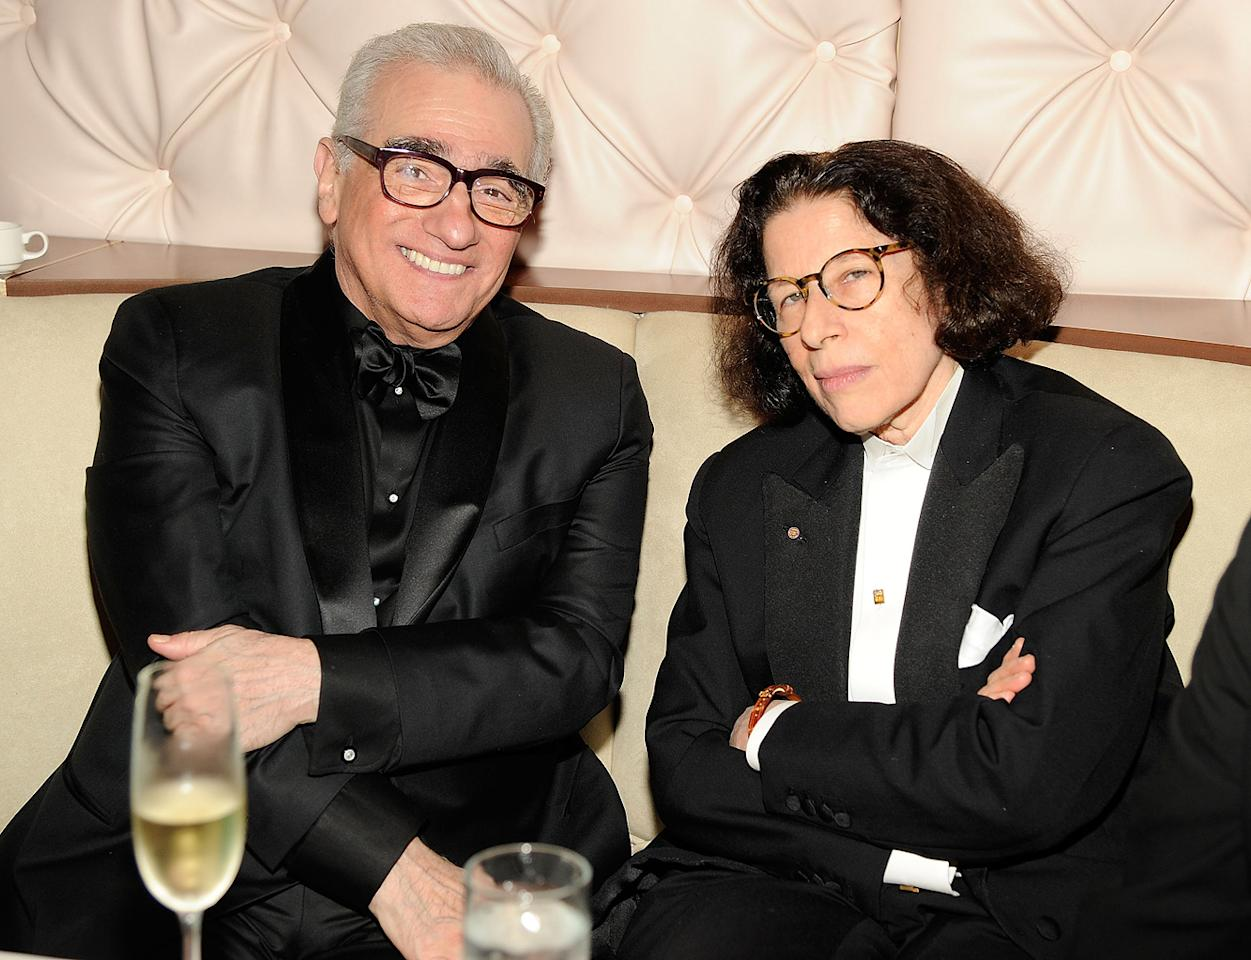 Marty Scorsese threw back a few cocktails with old pal Fran Lebowitz.